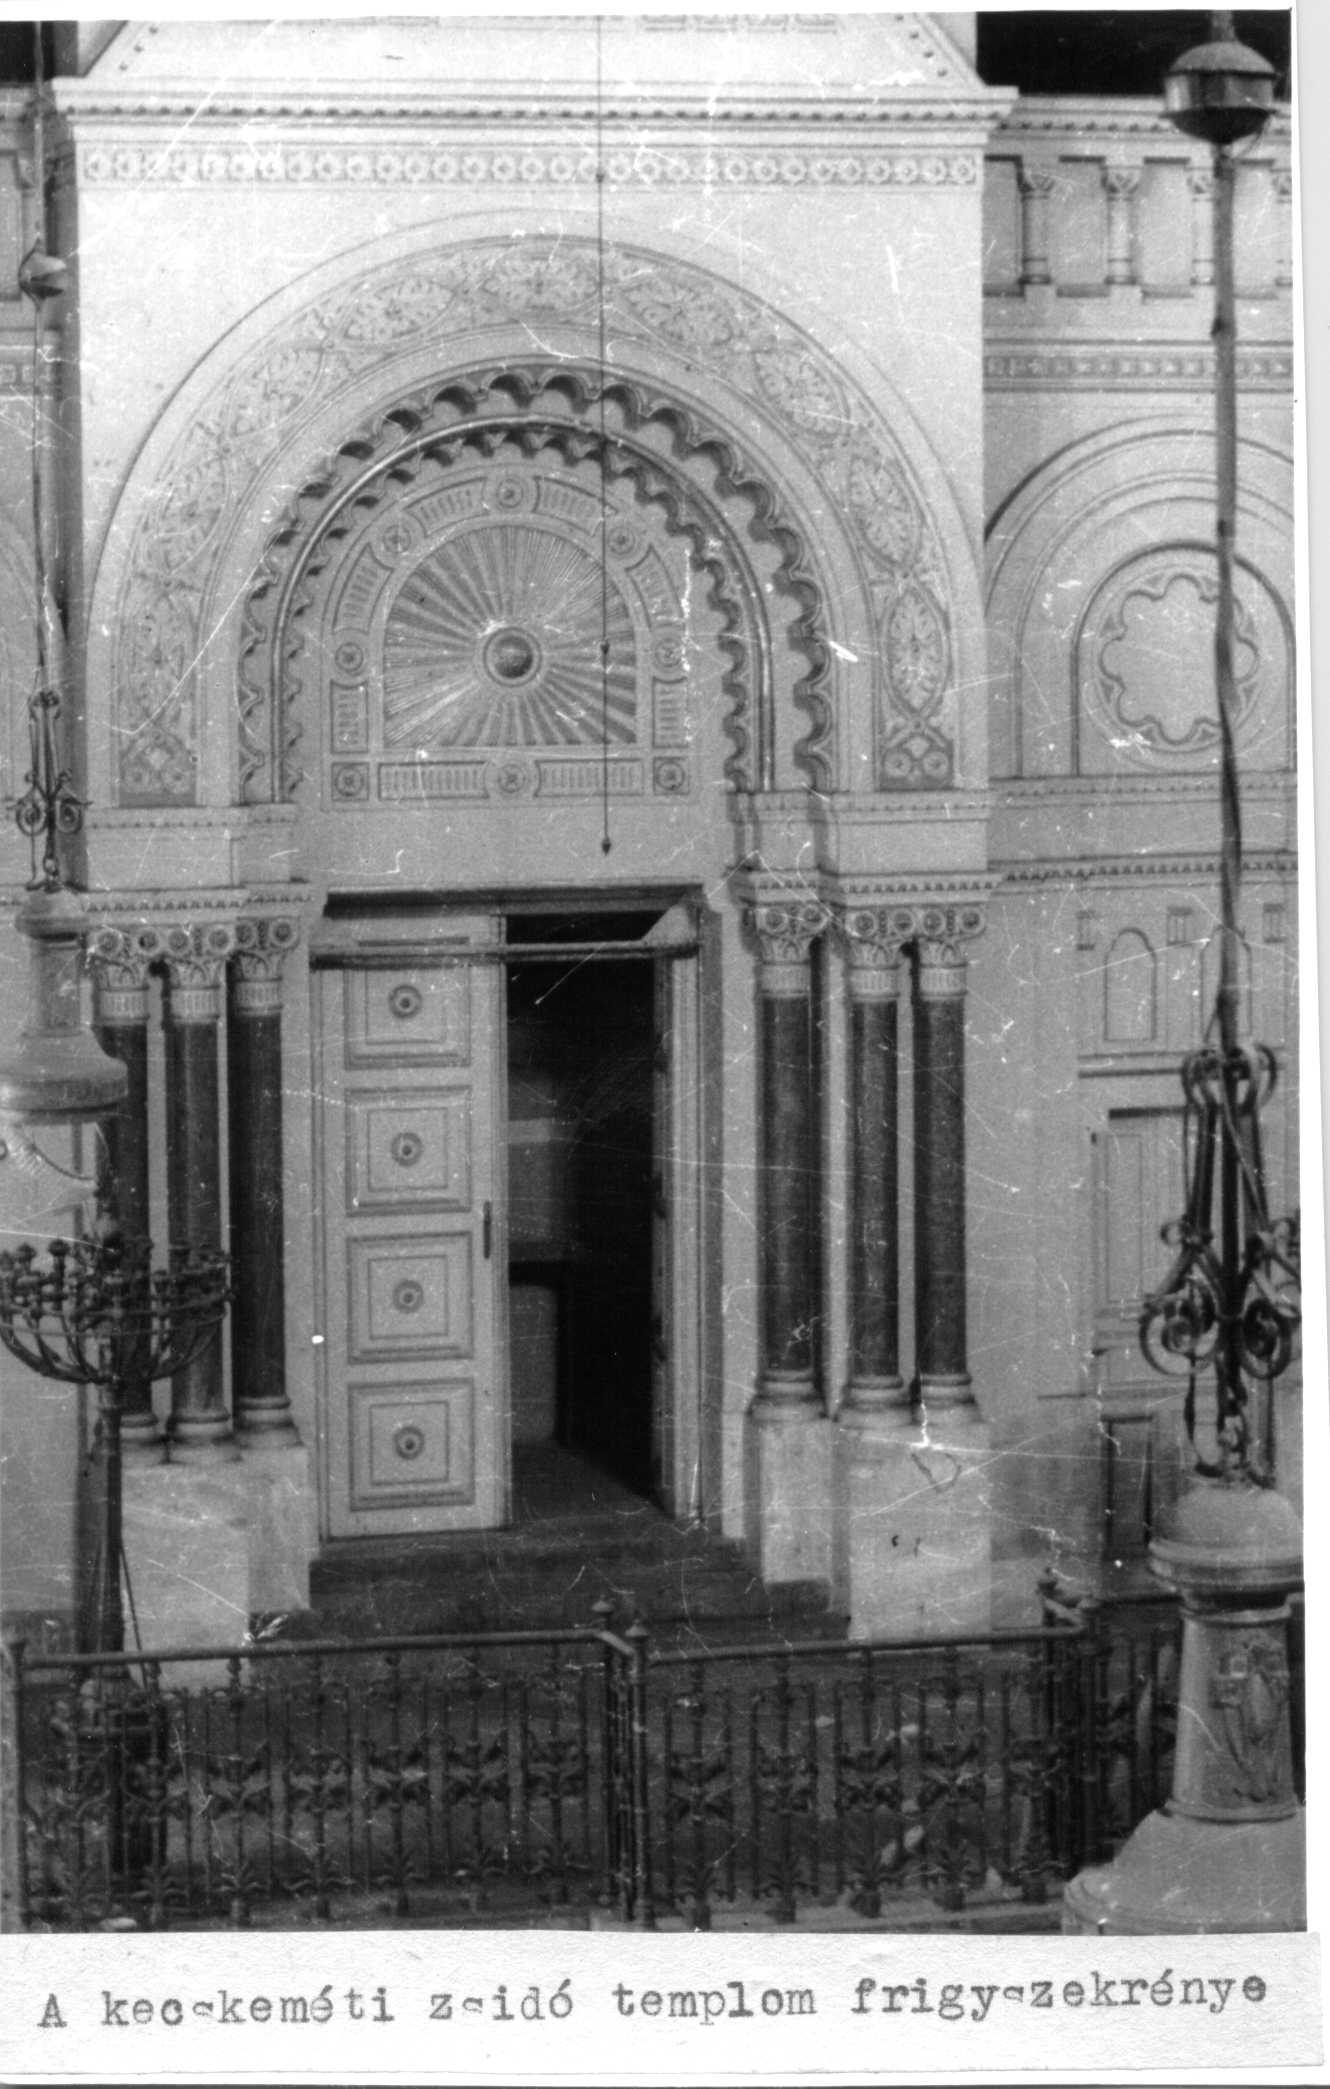 The Torah ark in what once was the interior of the temple